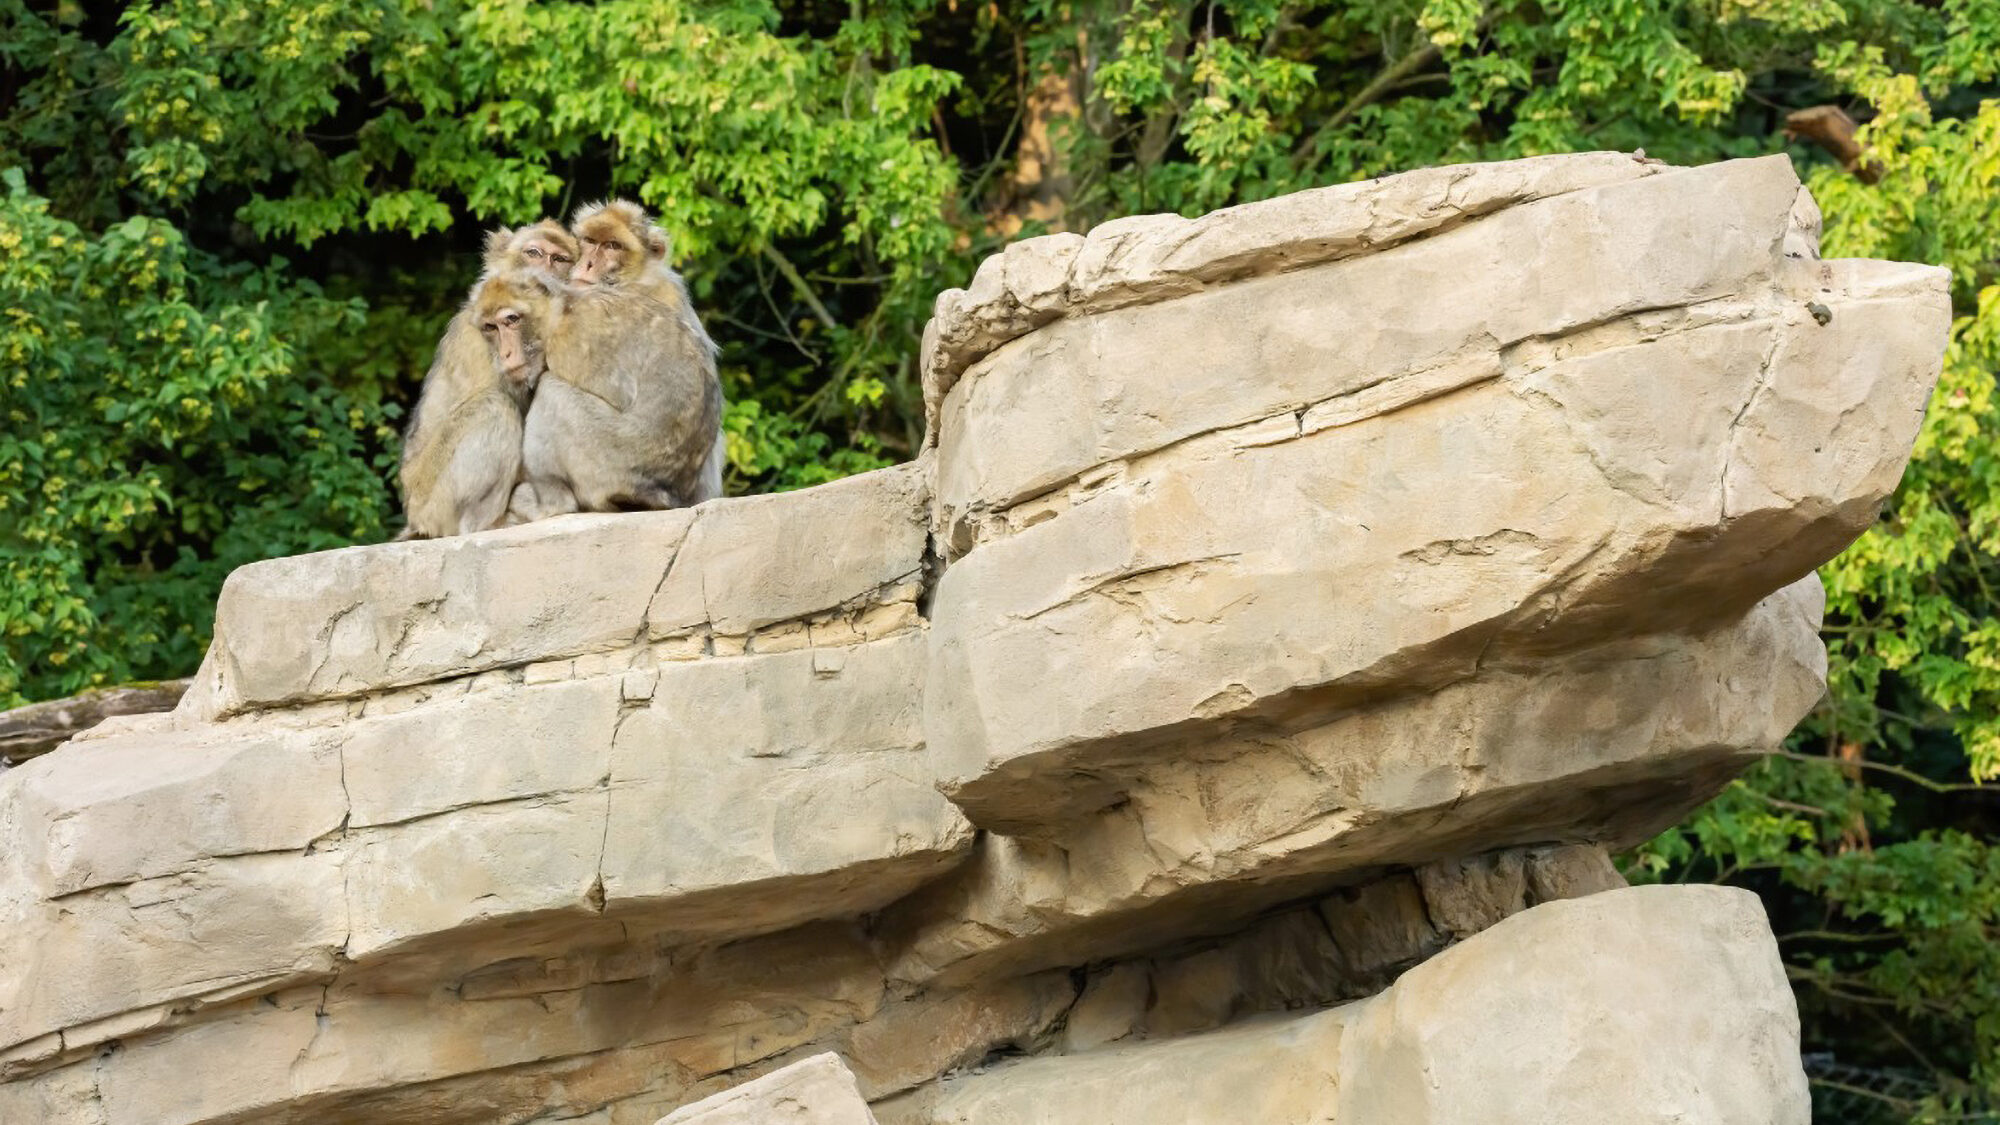 VIDEO: World's Oldest Zoo Spends $1.5 Million On Home For Monkeys And Sheep